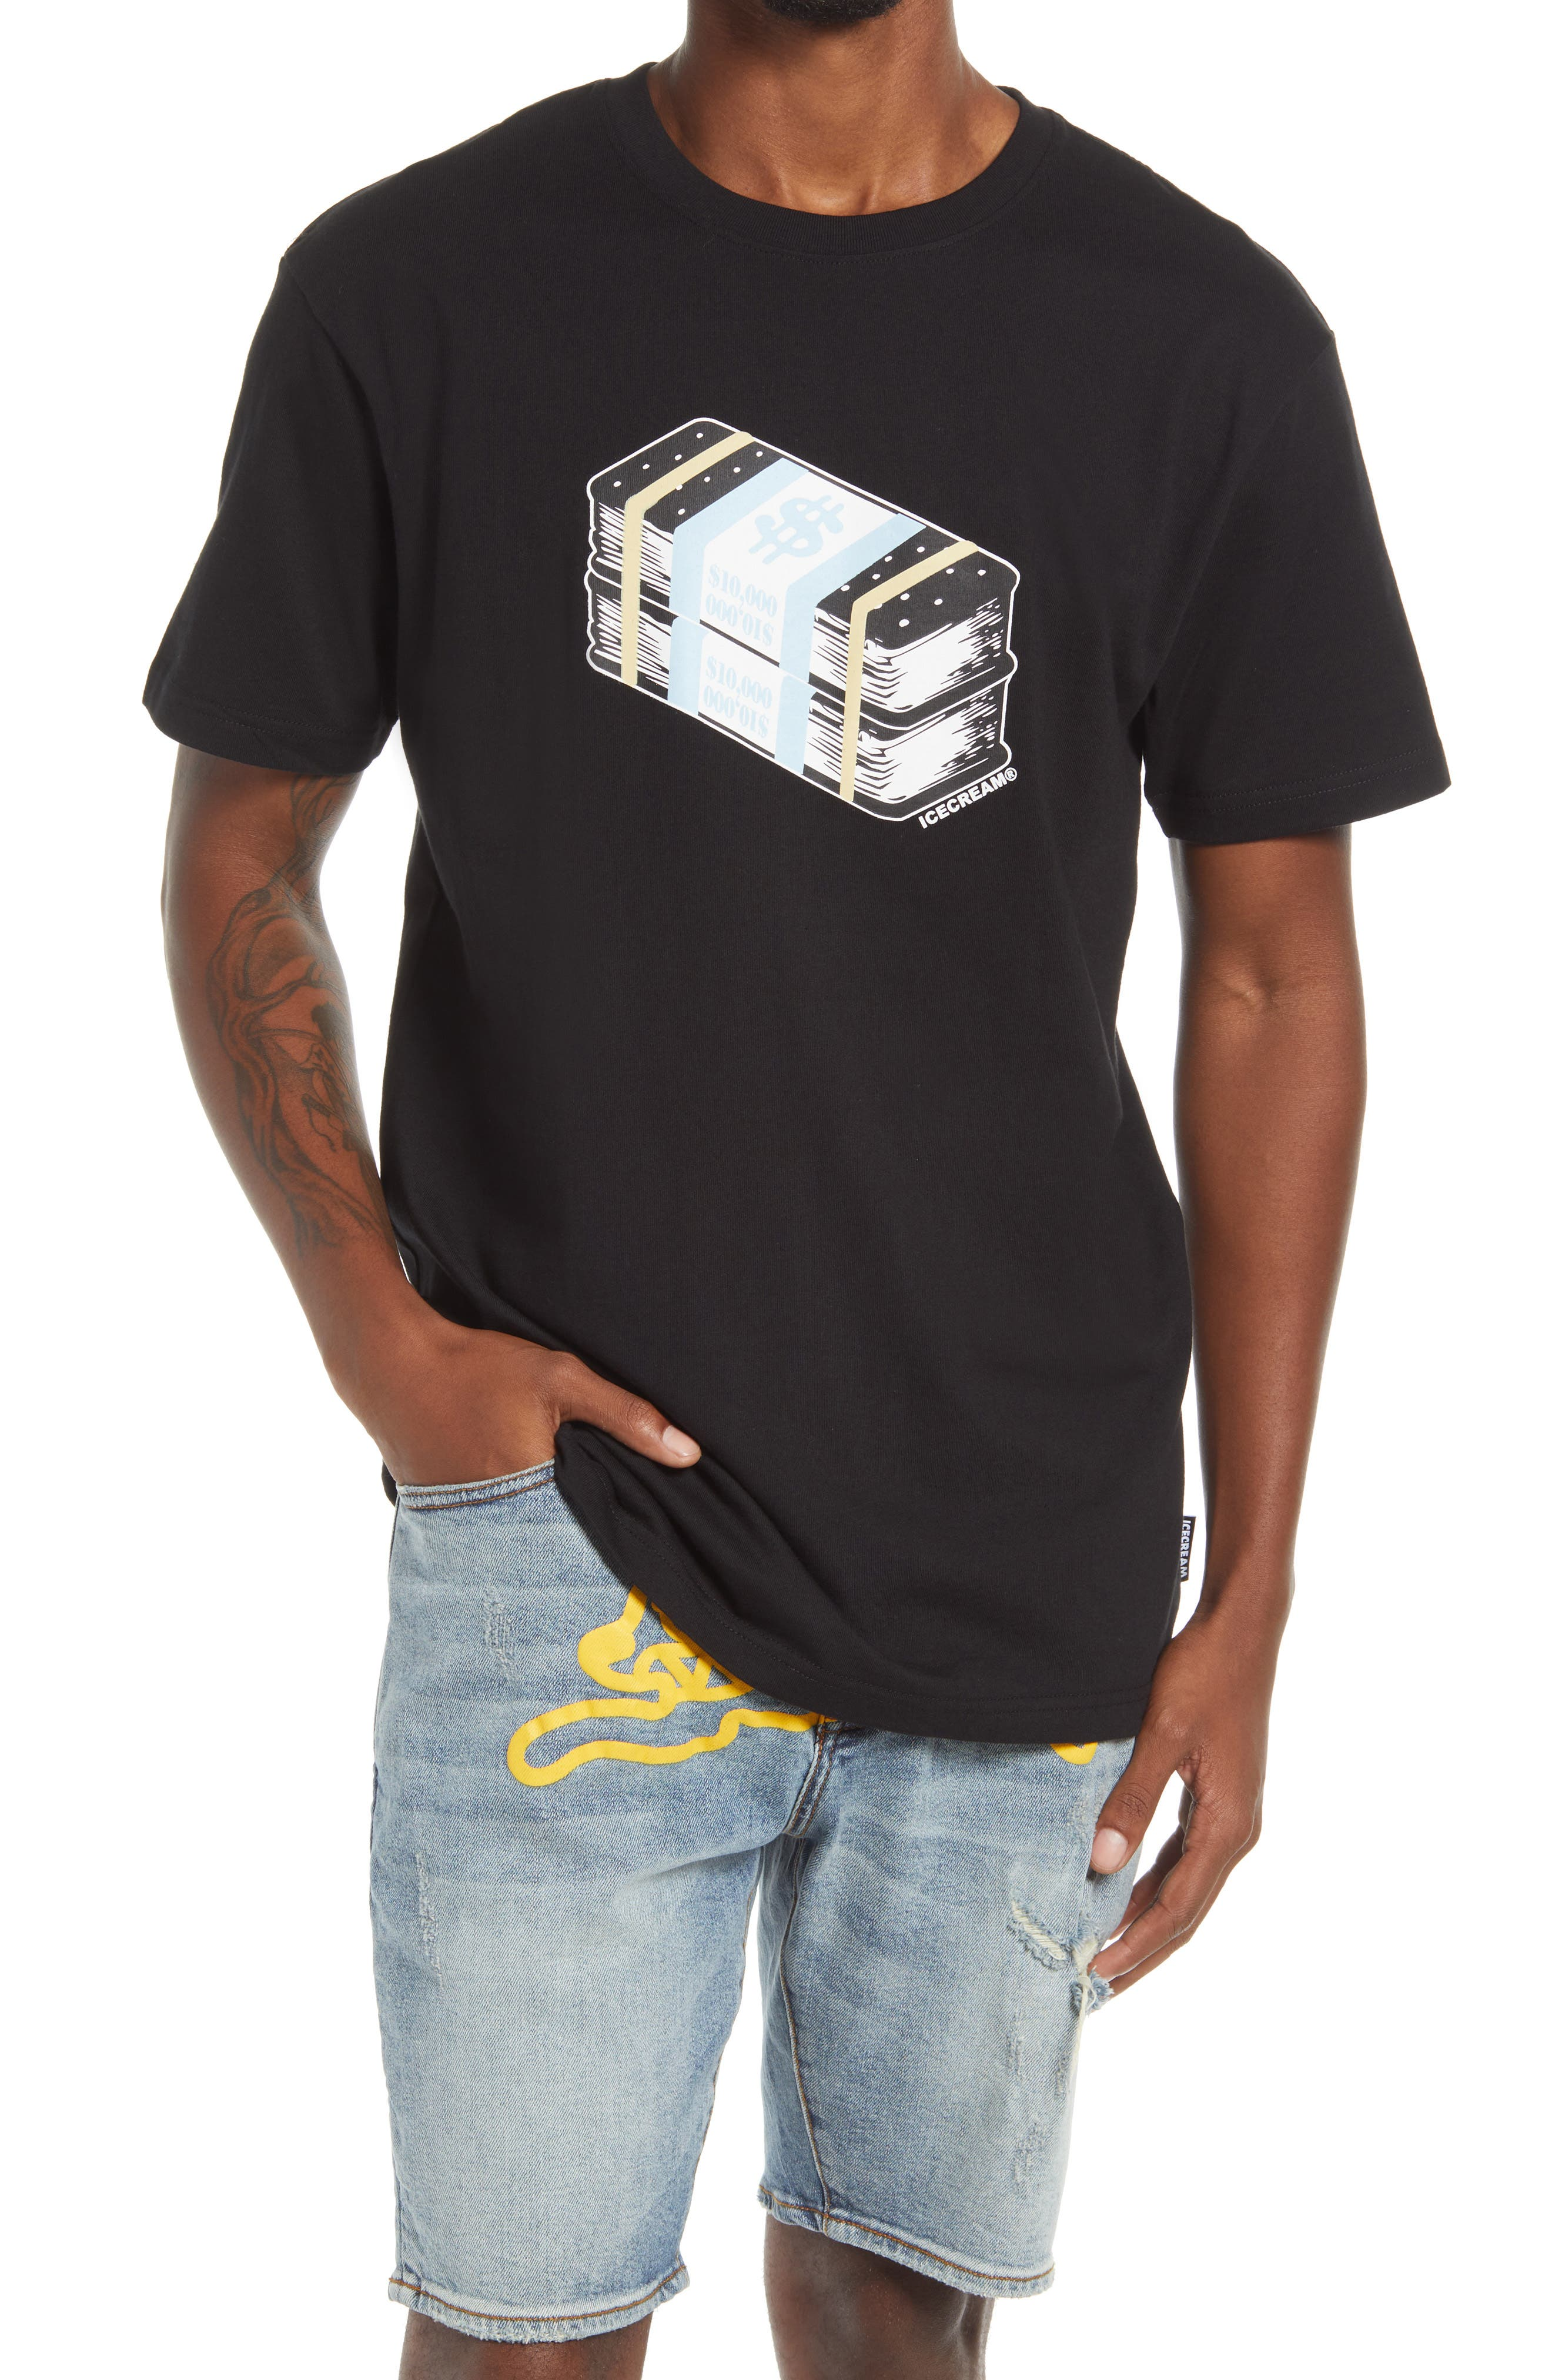 Bands Graphic Tee